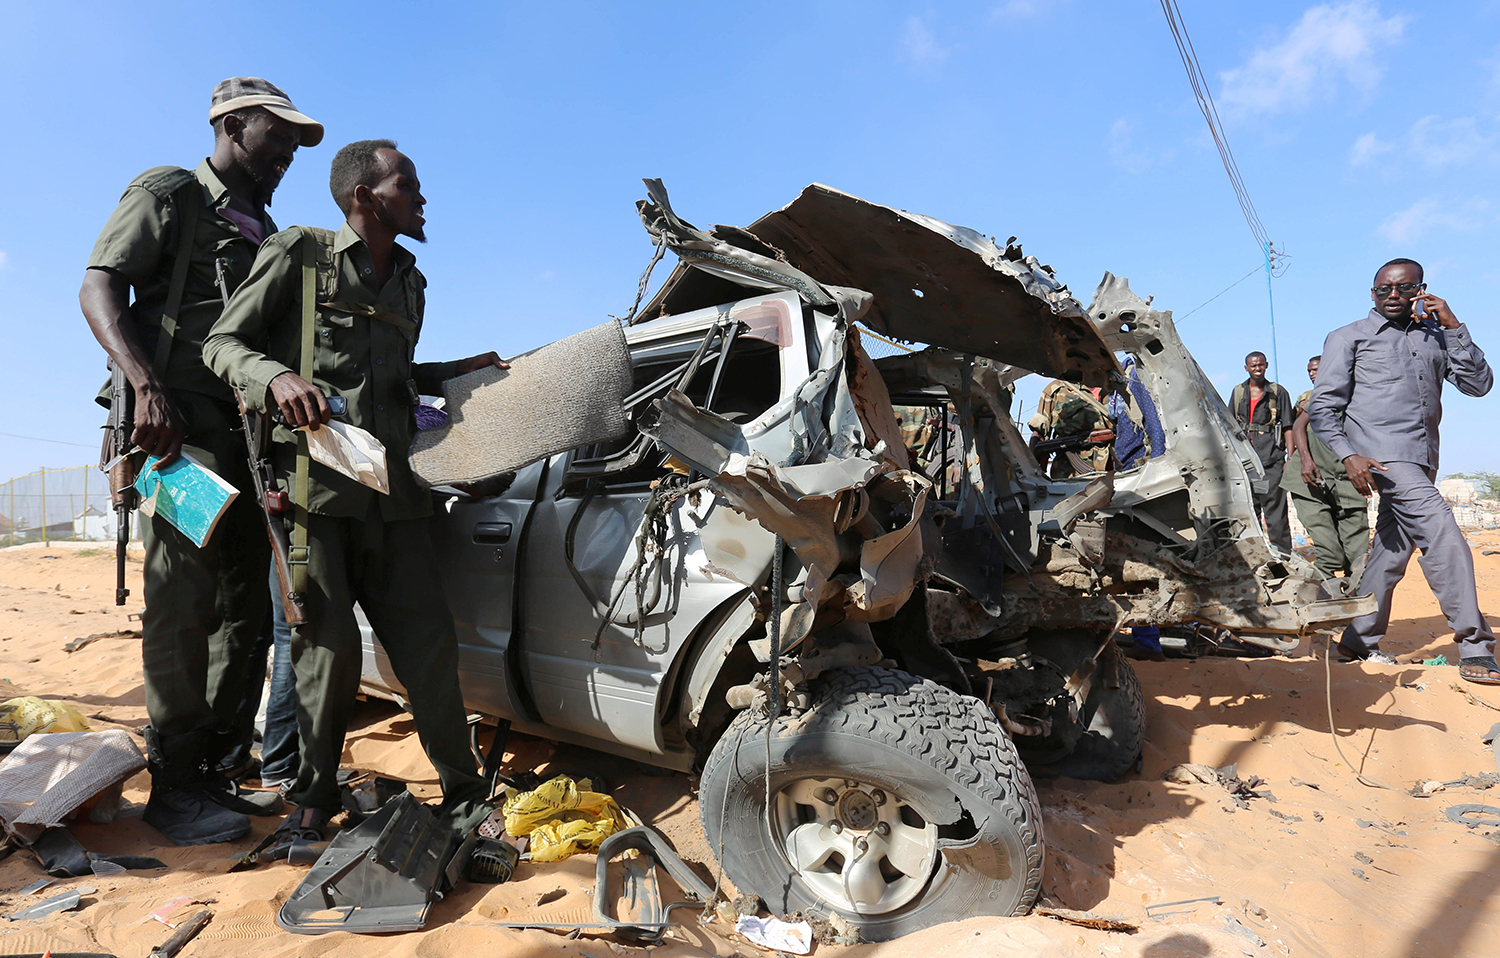 MOGADISHU 2017-02-27 Somali security forces secure the scene of a car bomb explosion in Warshadaha streets in Somalia's capital Mogadishu, February 27, 2017. REUTERS/Feisal Omar TPX IMAGES OF THE DAY Photo: / REUTERS / TT / kod 72000